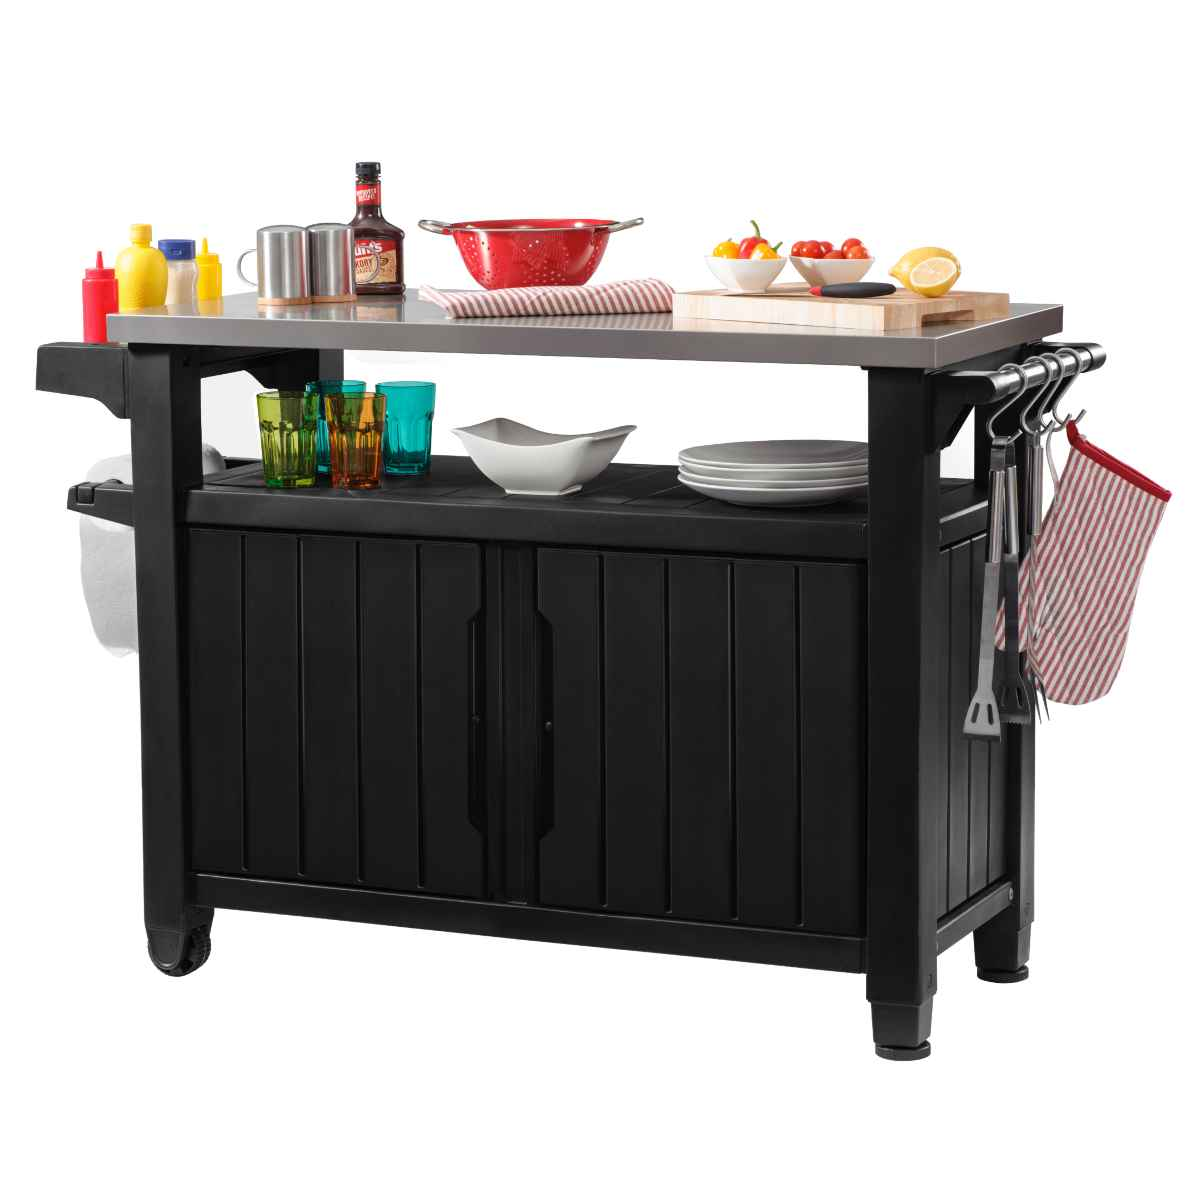 Keter Unity Double BBQ Table - Anthracite Grey